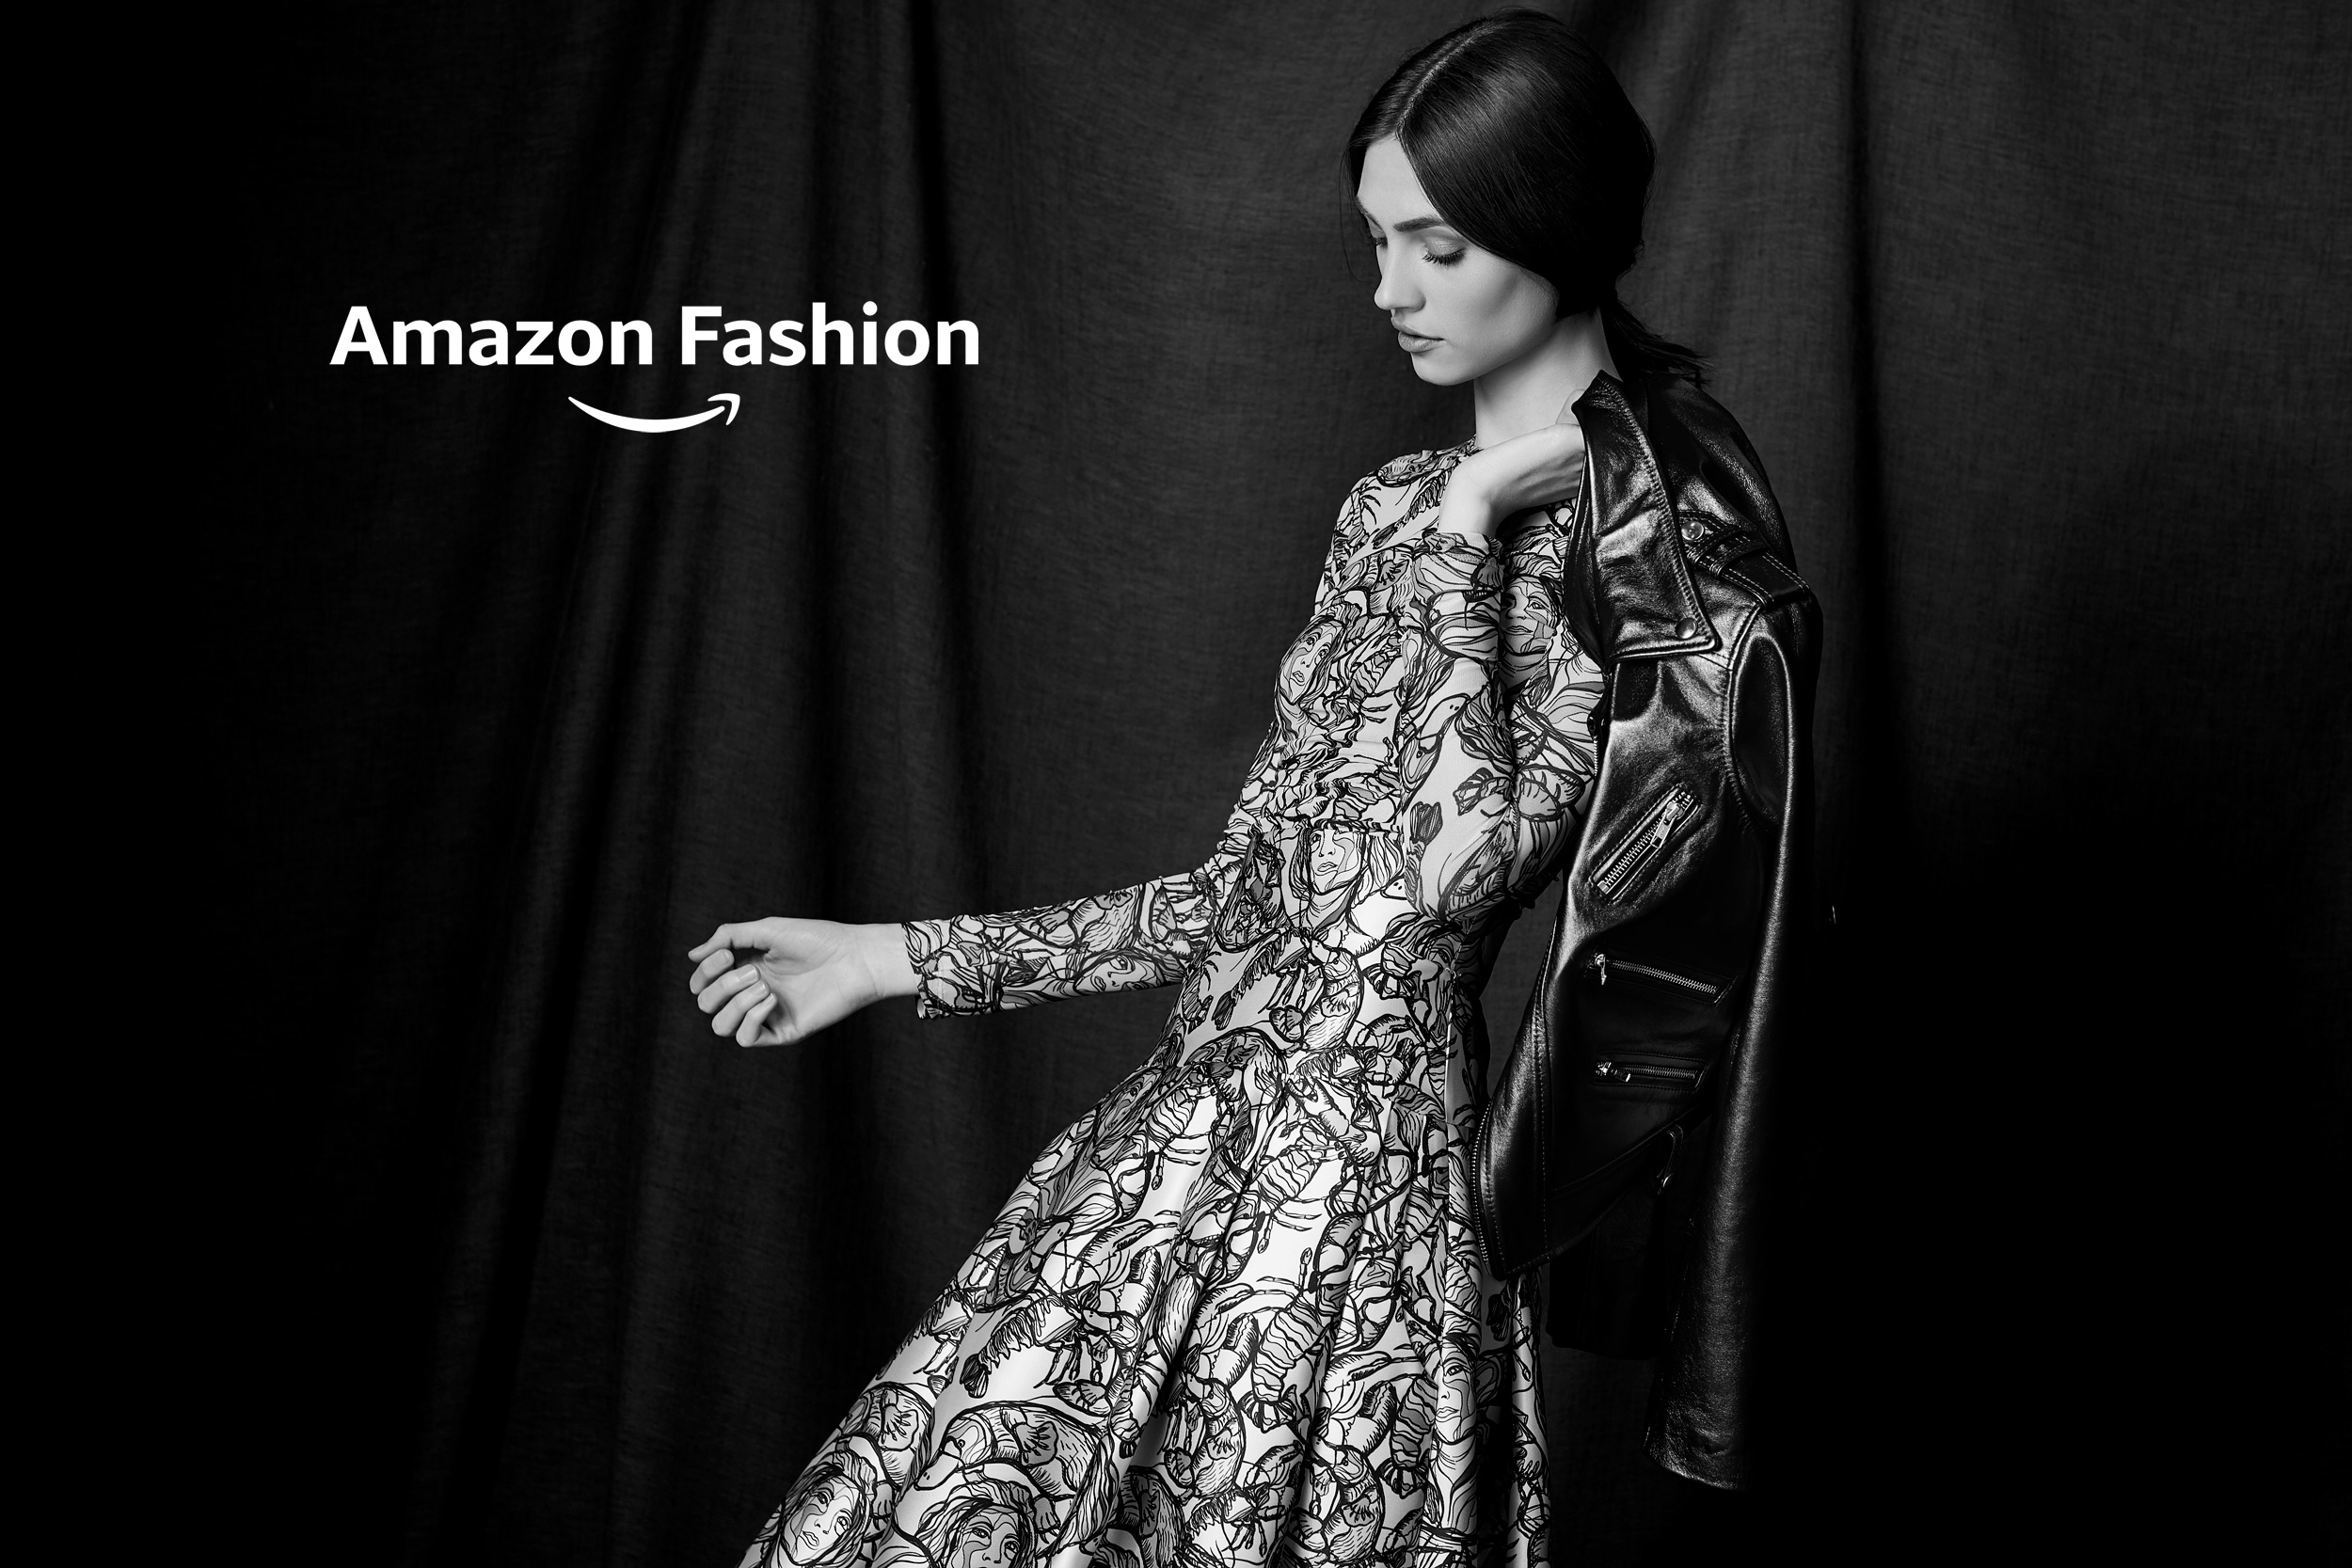 AmazonFashion20192499.alexiaUlibarri